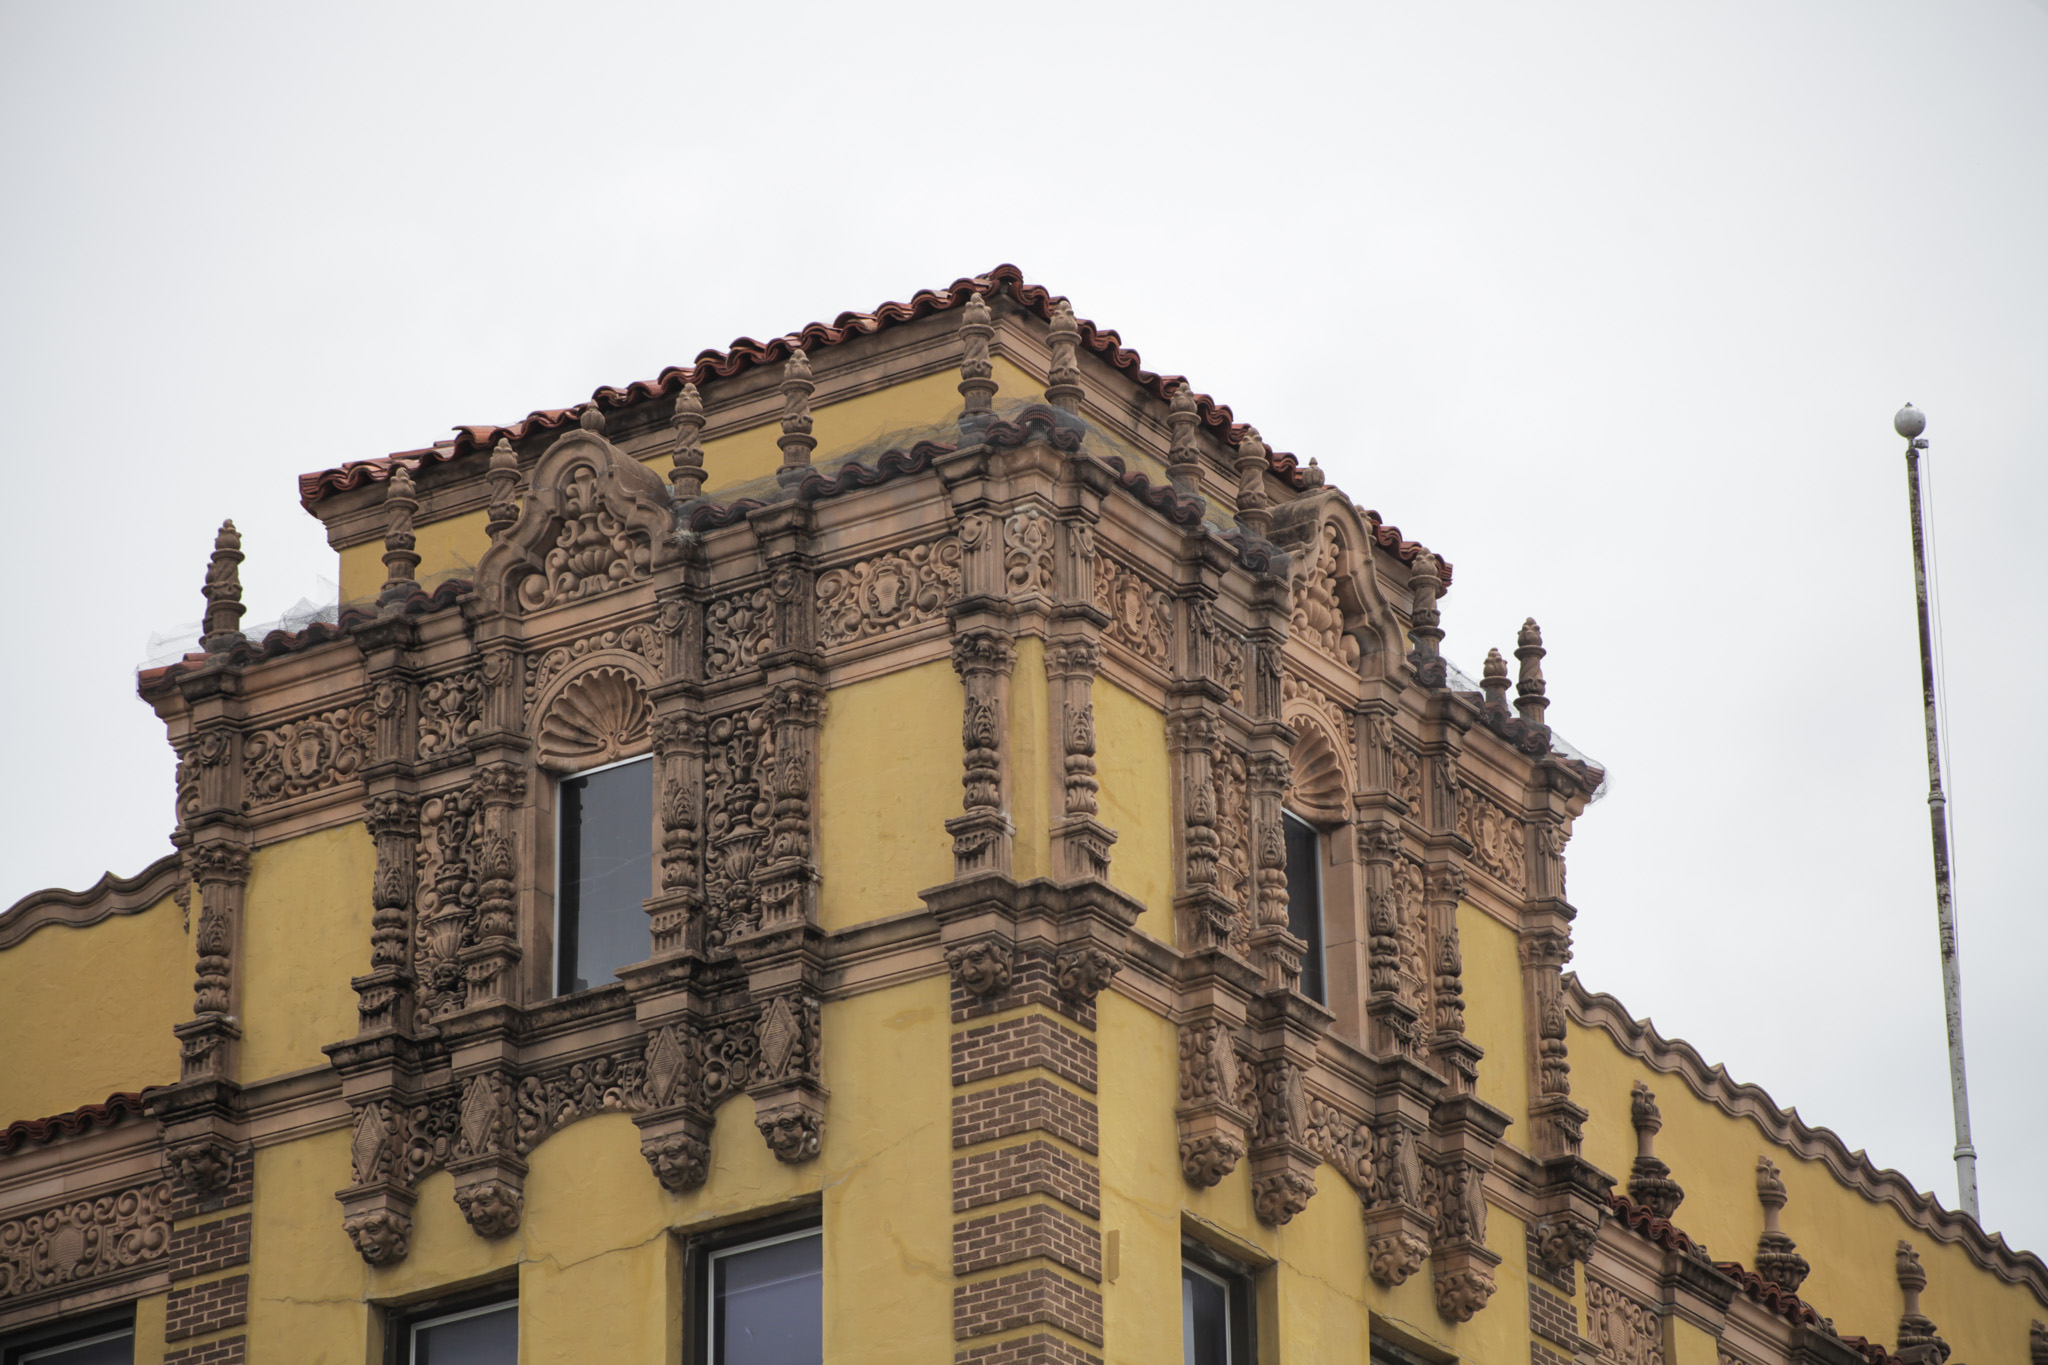 The restoration project of the Light building will include replacing the windows, re-roofing, plaster and paint restoration, and more.